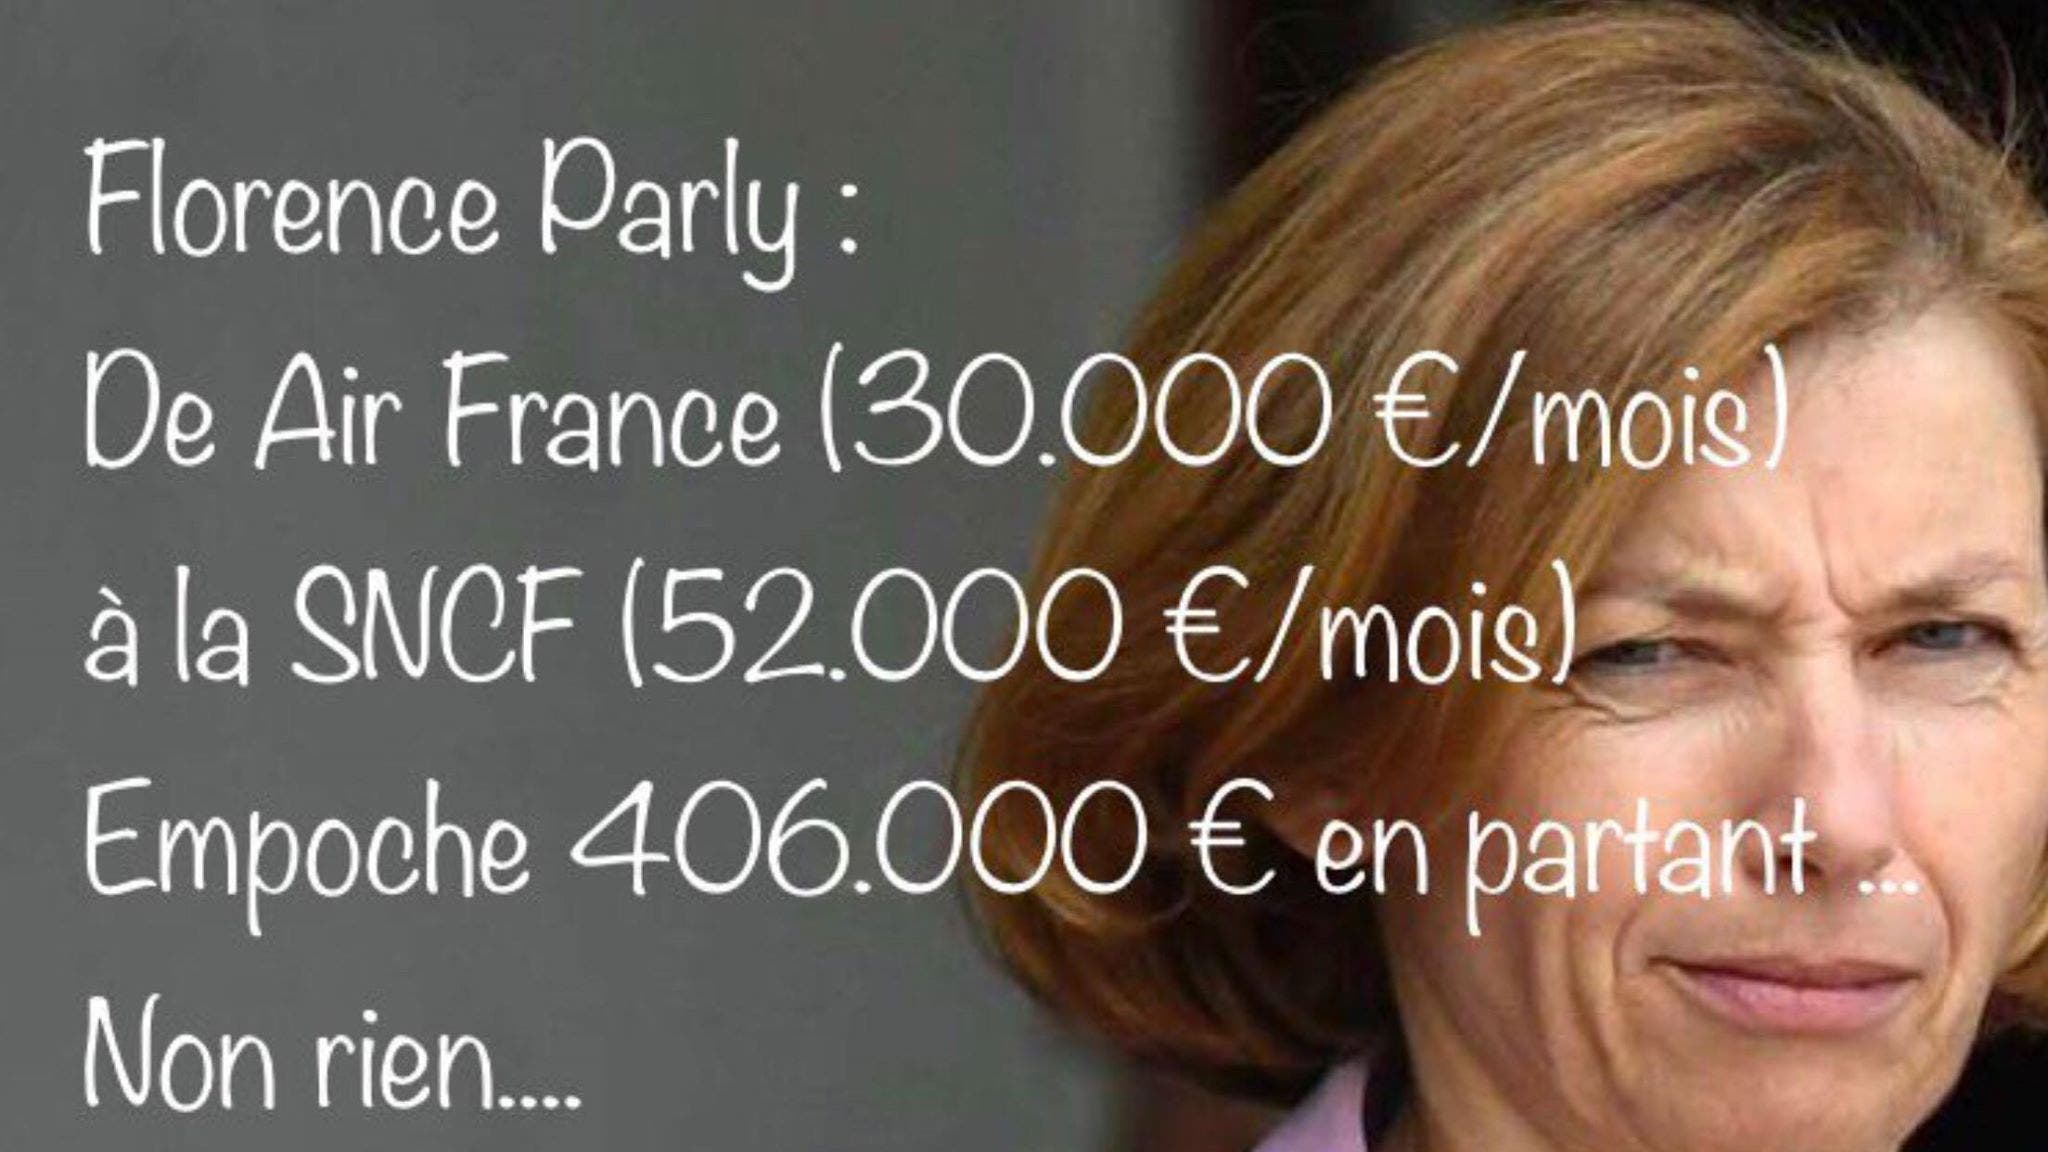 parly air france